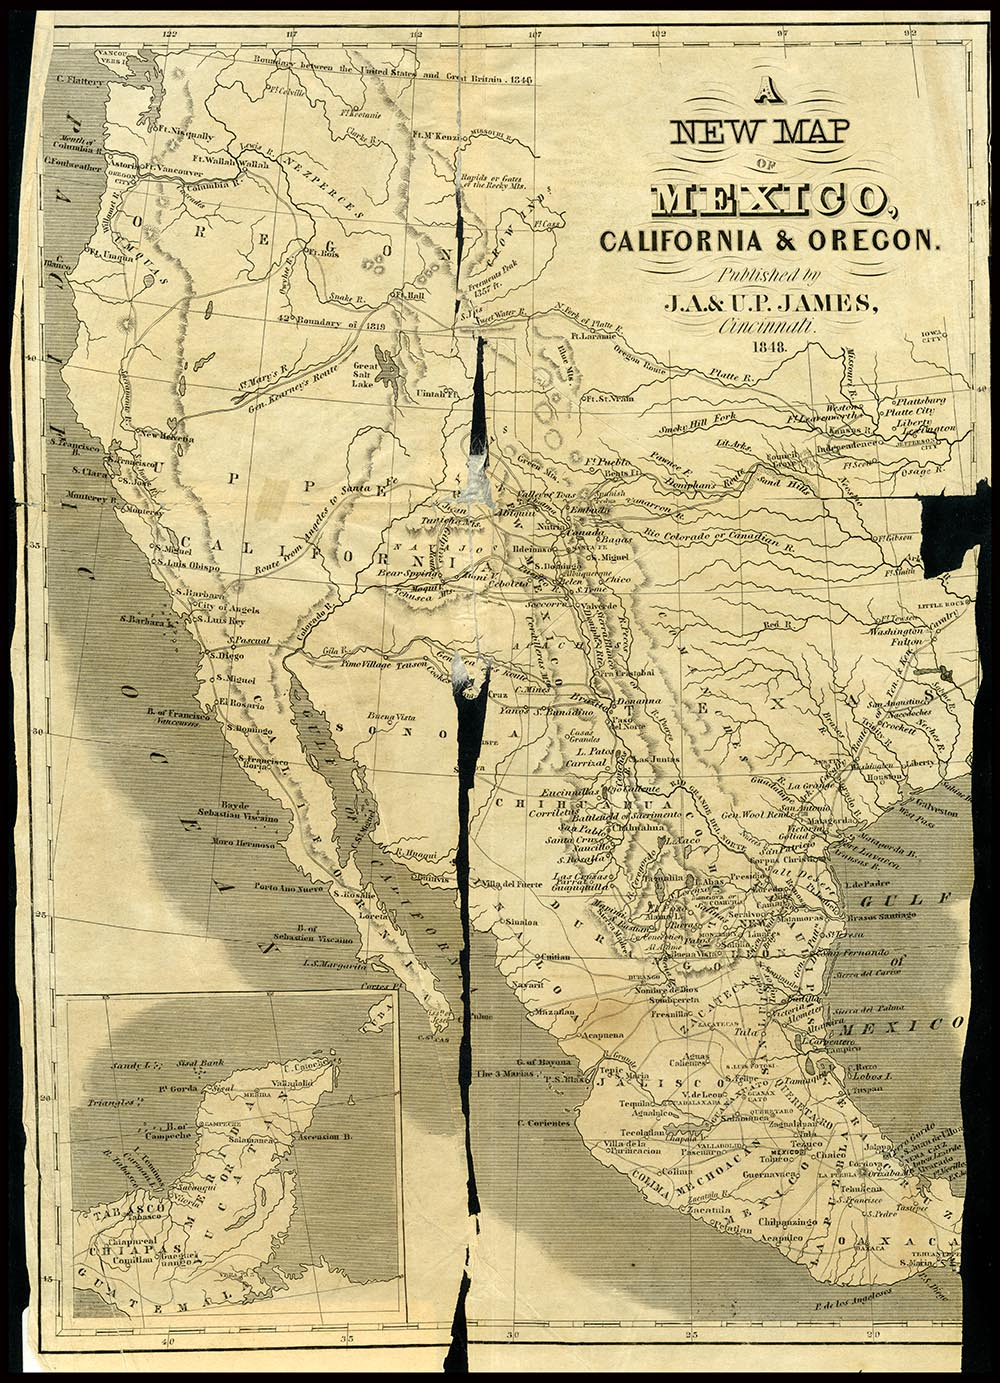 An 1848 map of Mexico, California, and Oregon, which represents much of the territory taken by the United States in the war with Mexico